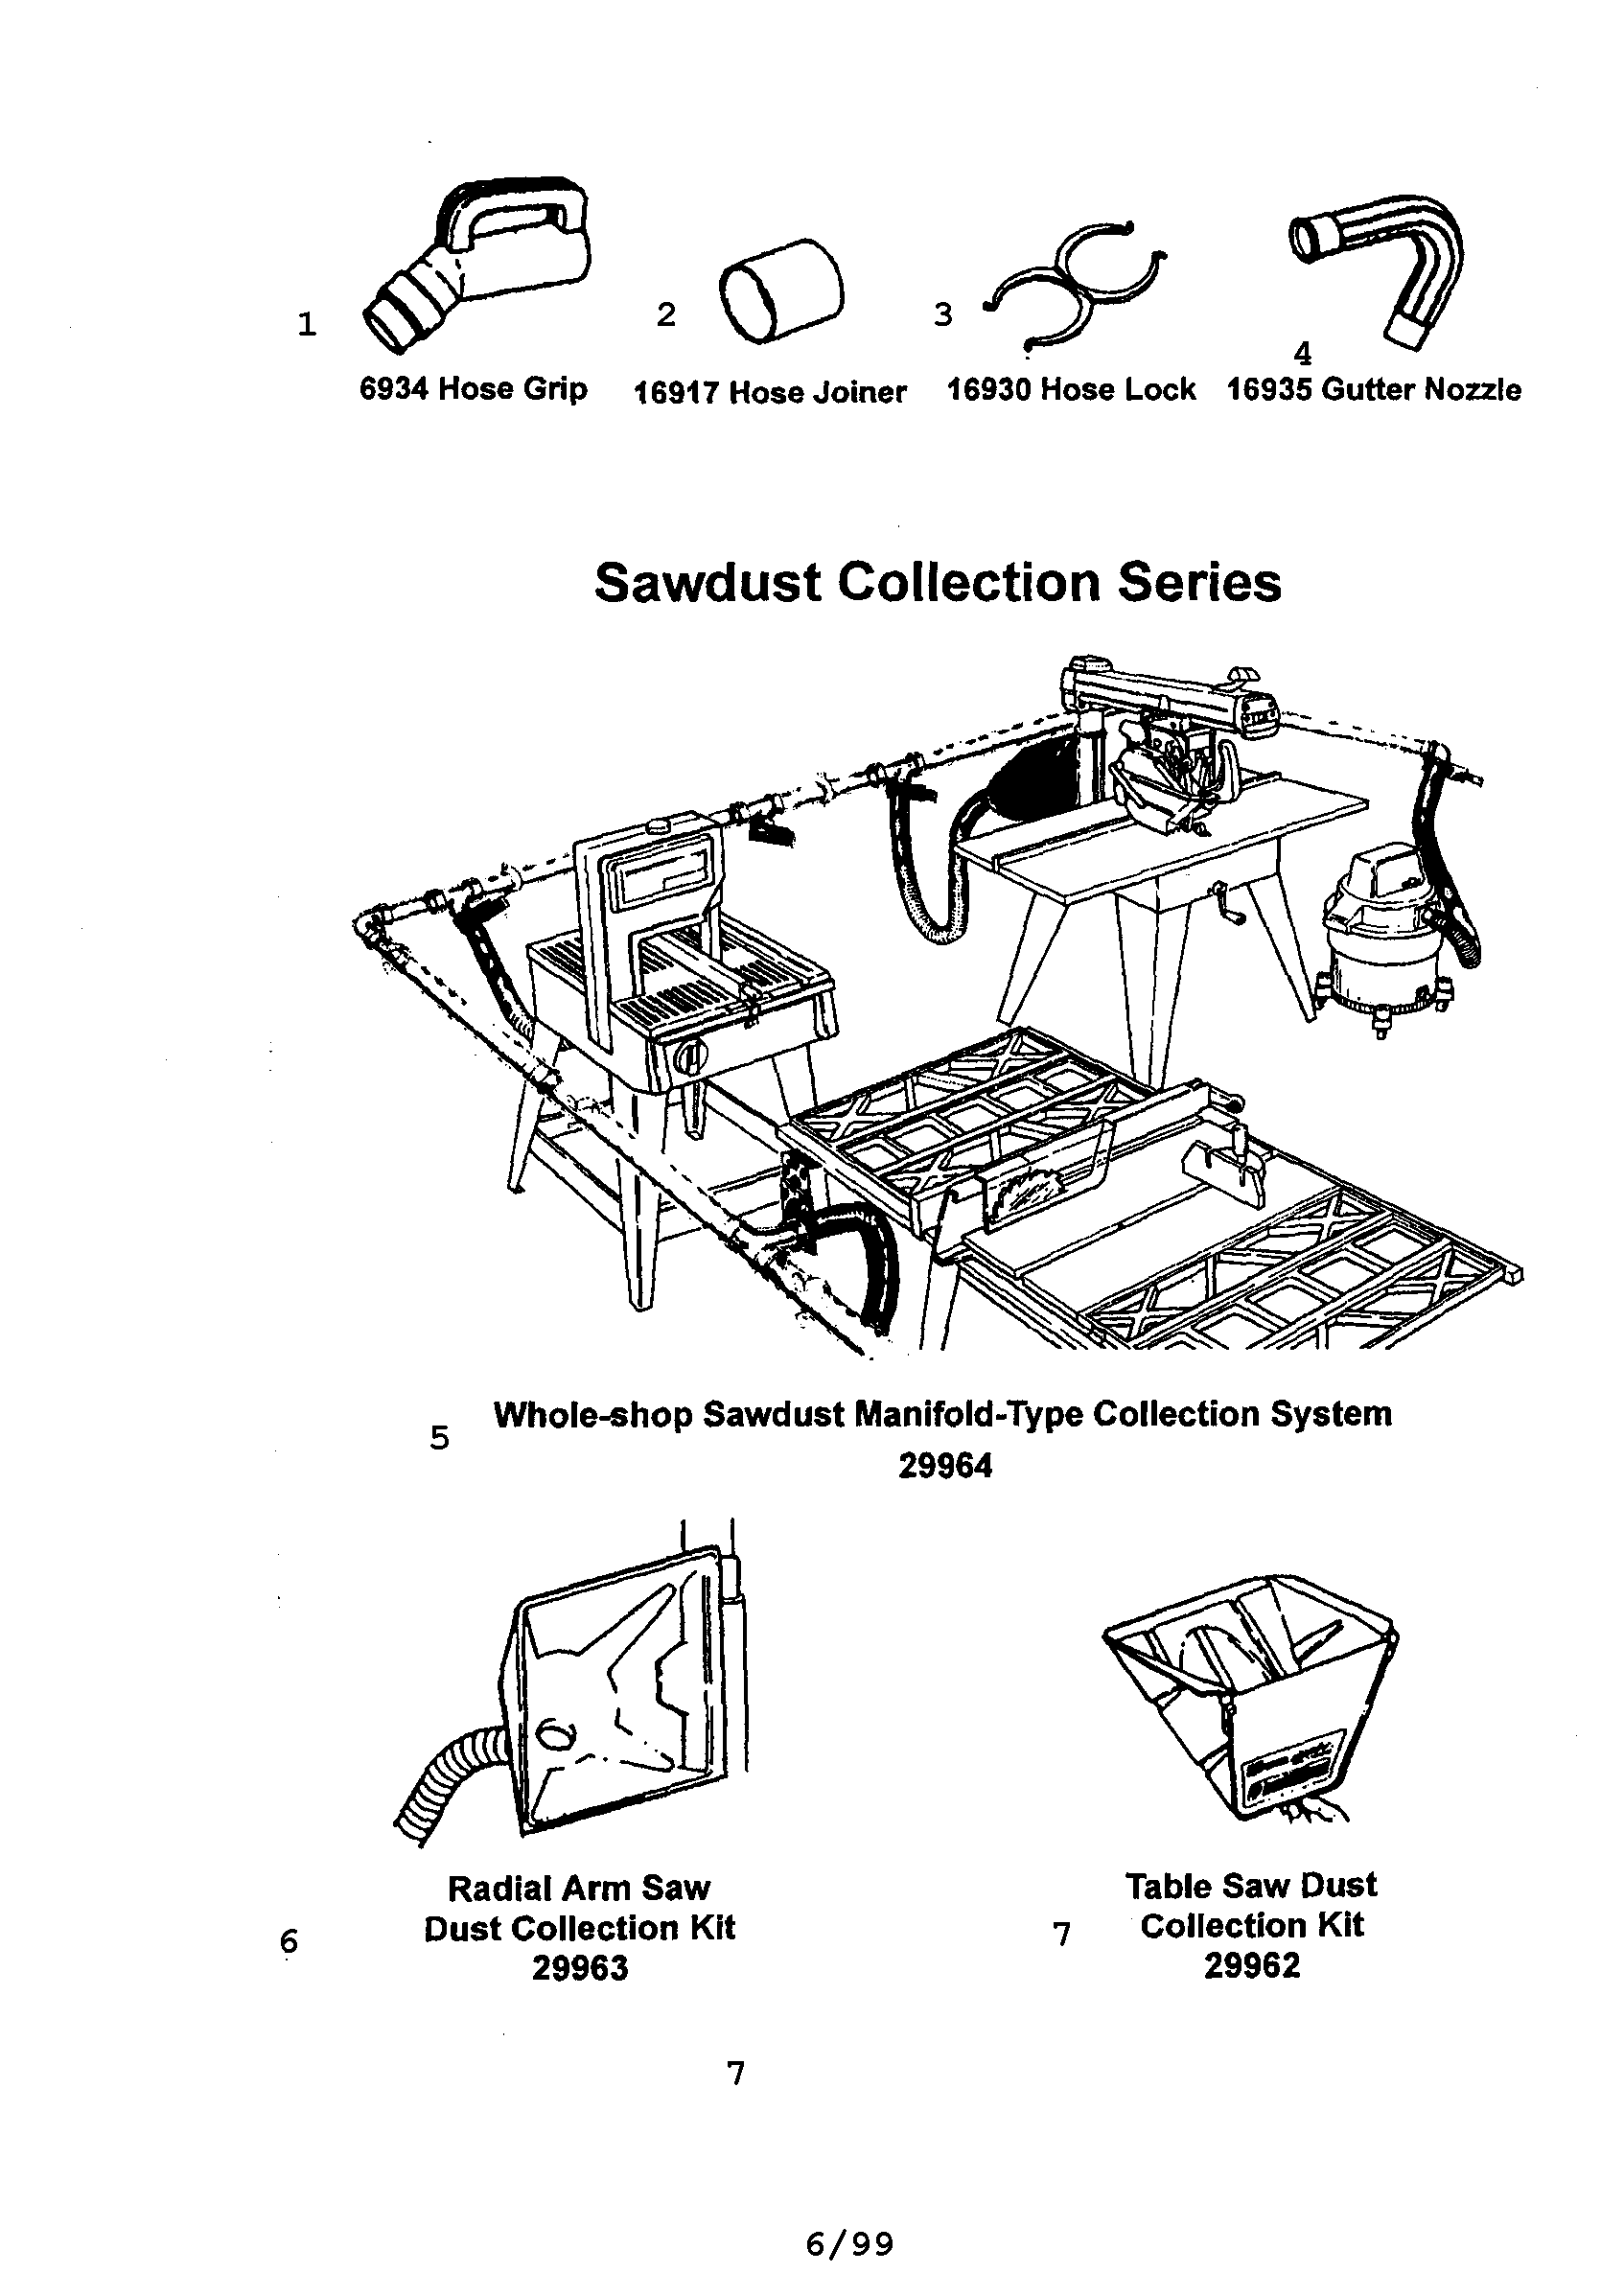 SAWDUST COLLECTION SERIES Diagram & Parts List for Model